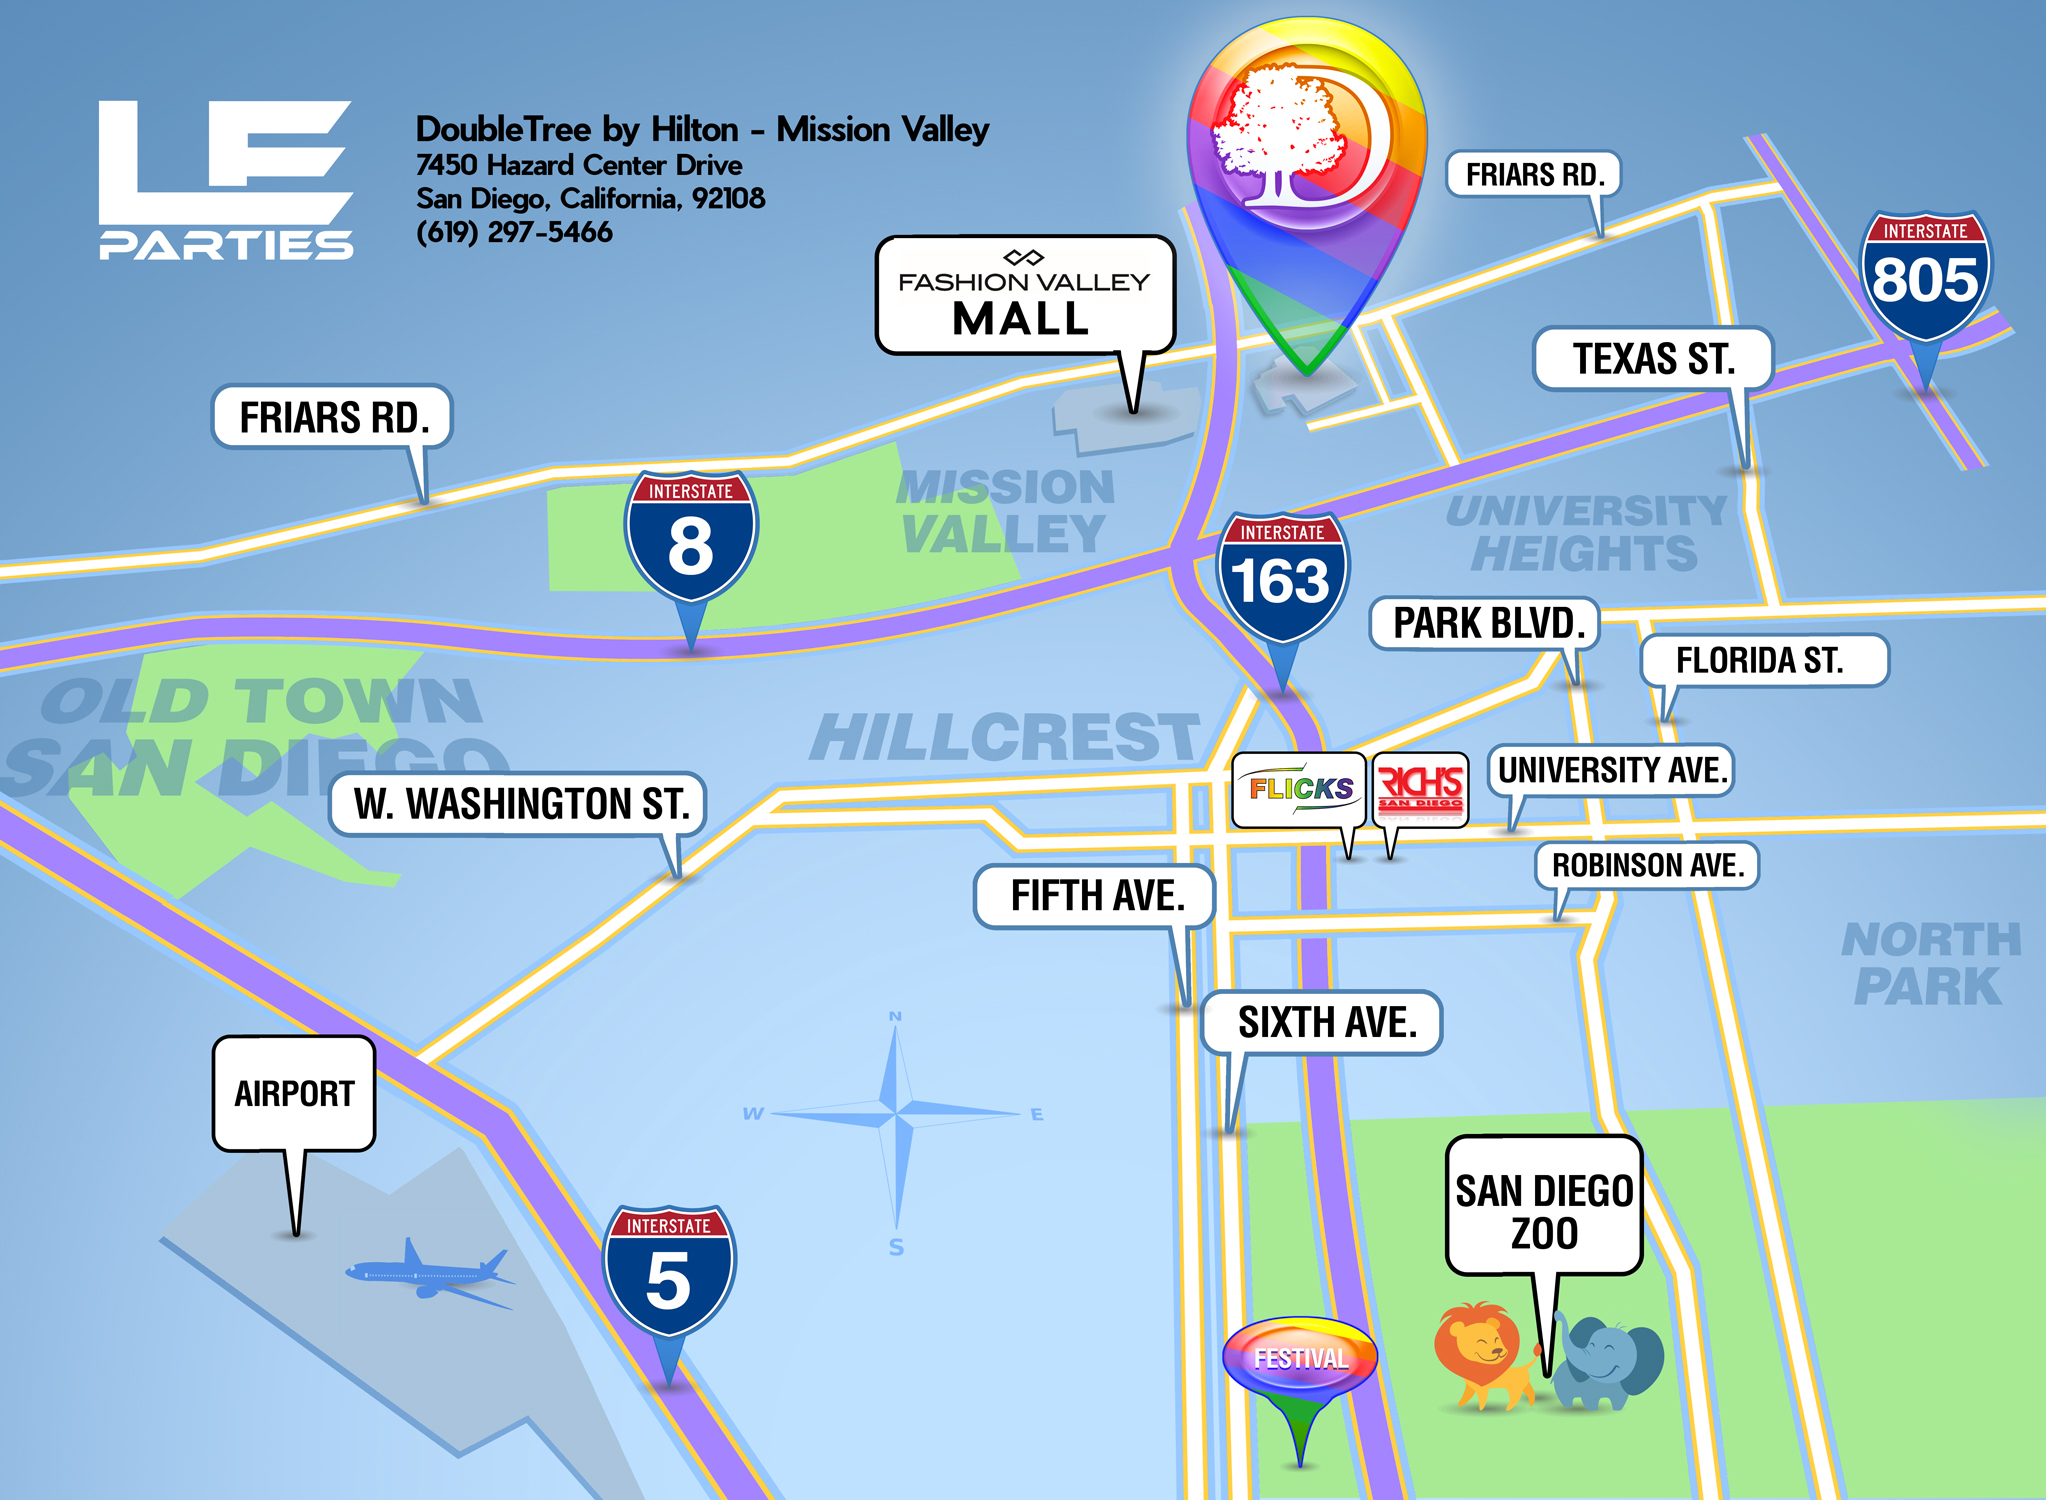 Fashion Valley San Diego Map.San Diego Pride Le Parties